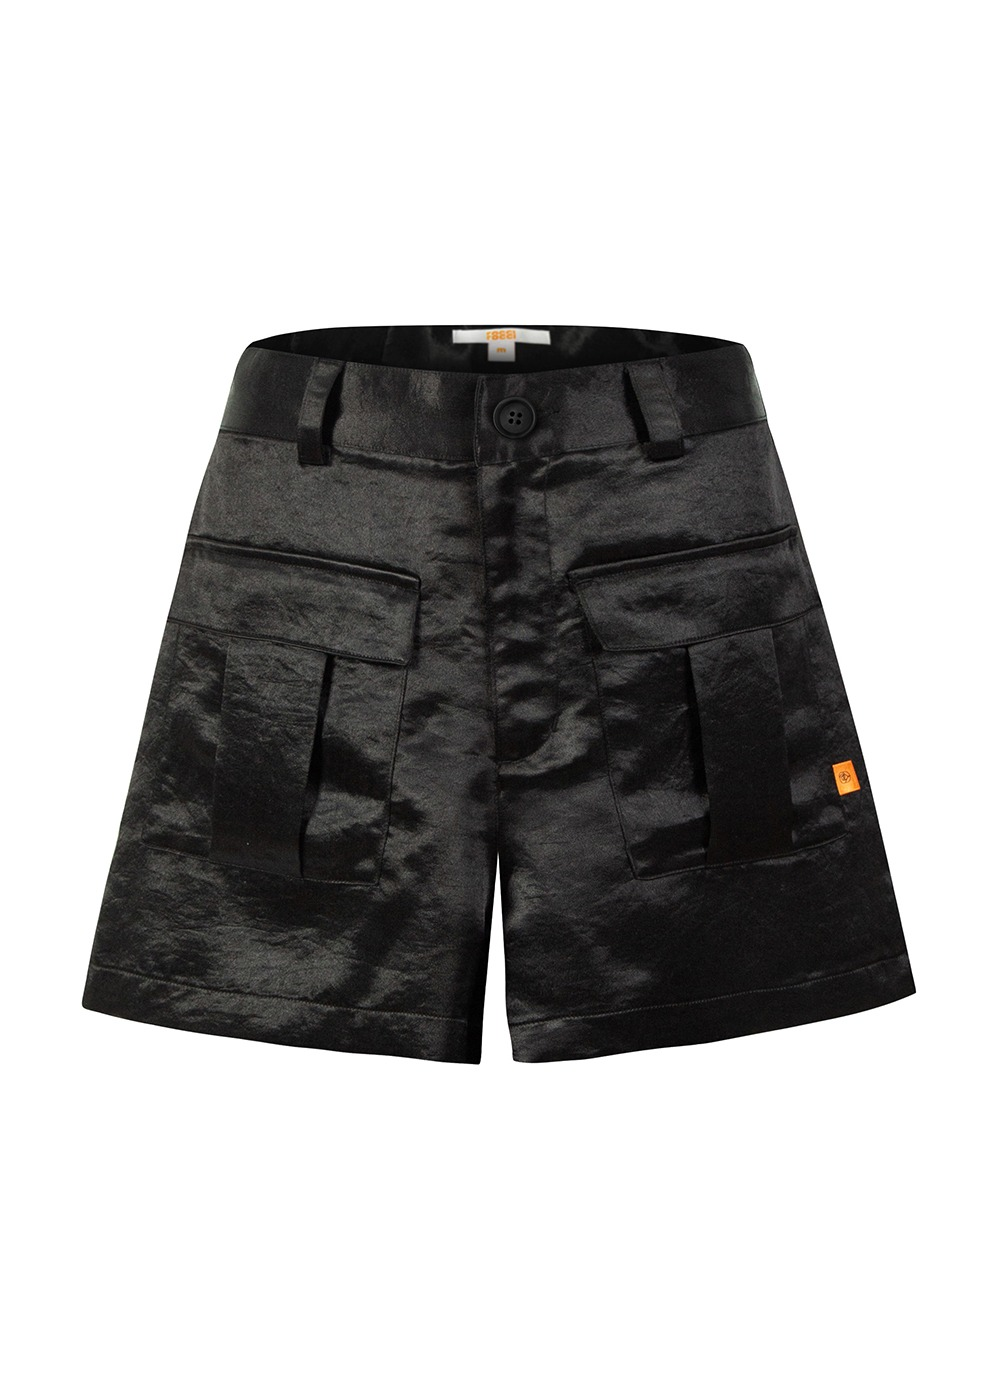 Pocket Shorts [BLACK]Pocket Shorts [BLACK]자체브랜드